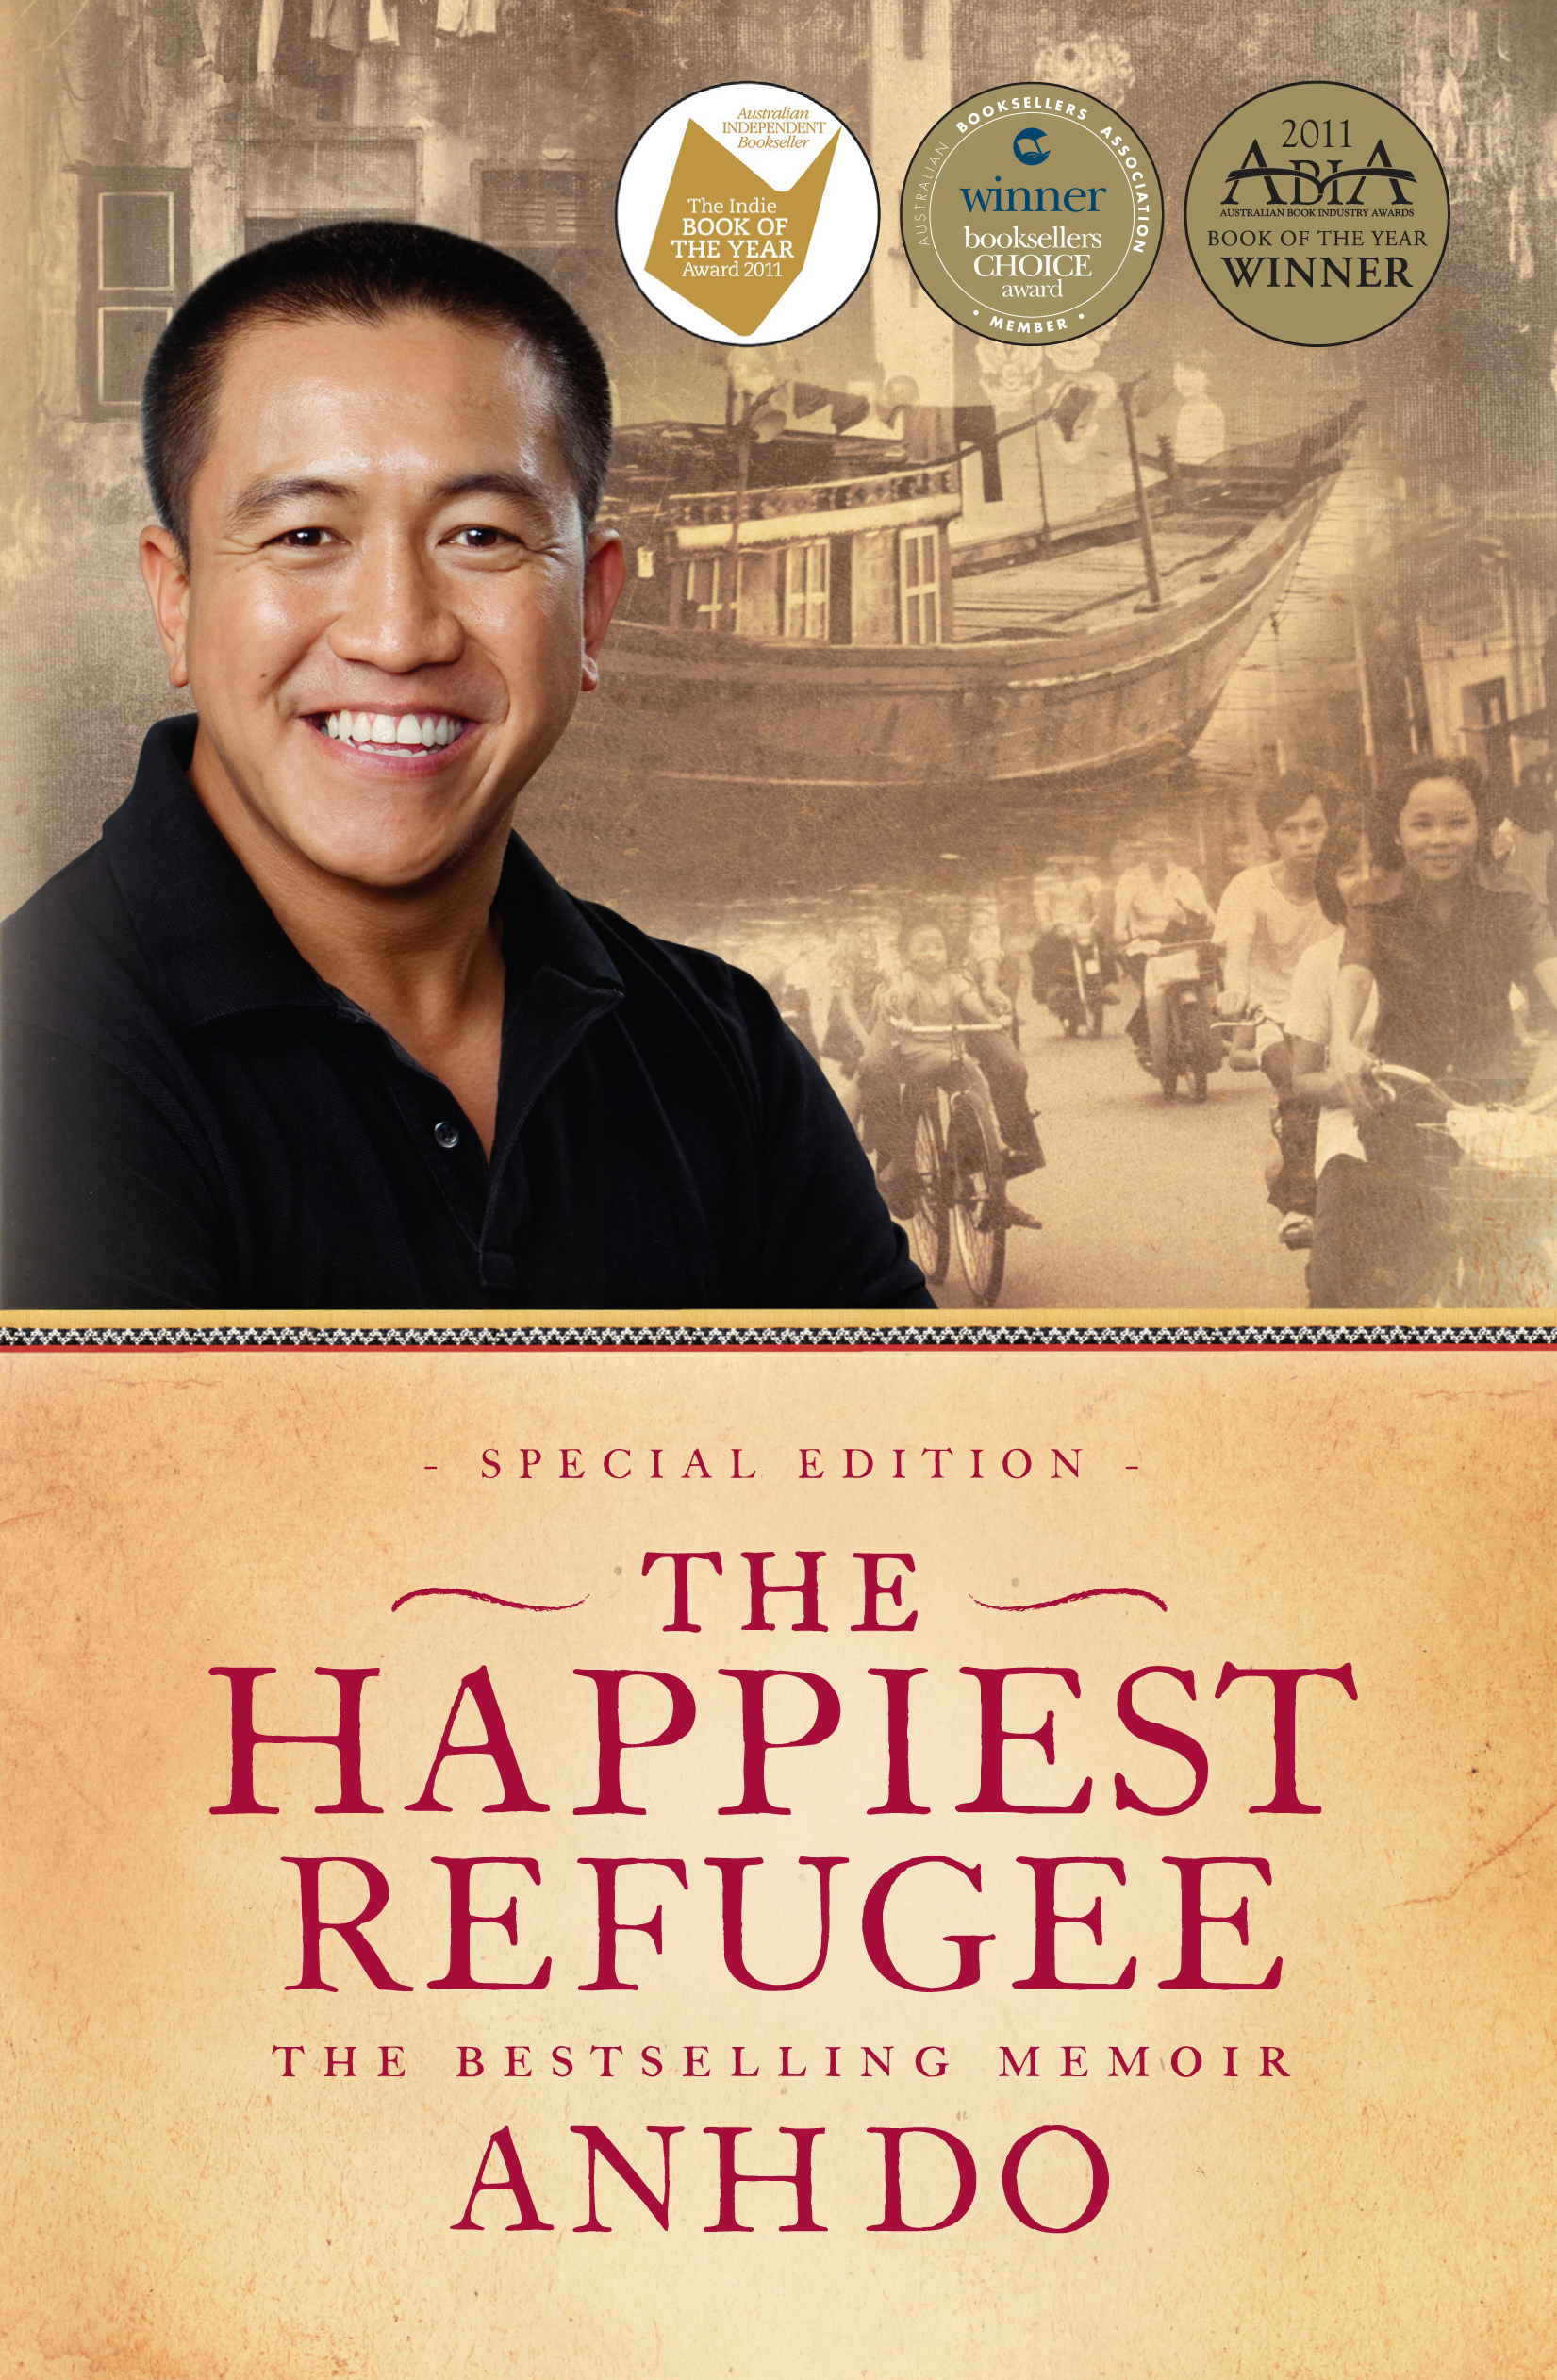 an analysis of the happiest refugee by ahn do essay An analytical essay, of 600-800 words, in response to a set question on anh do's memoir, the happiest refugee this will be done under exam conditions.